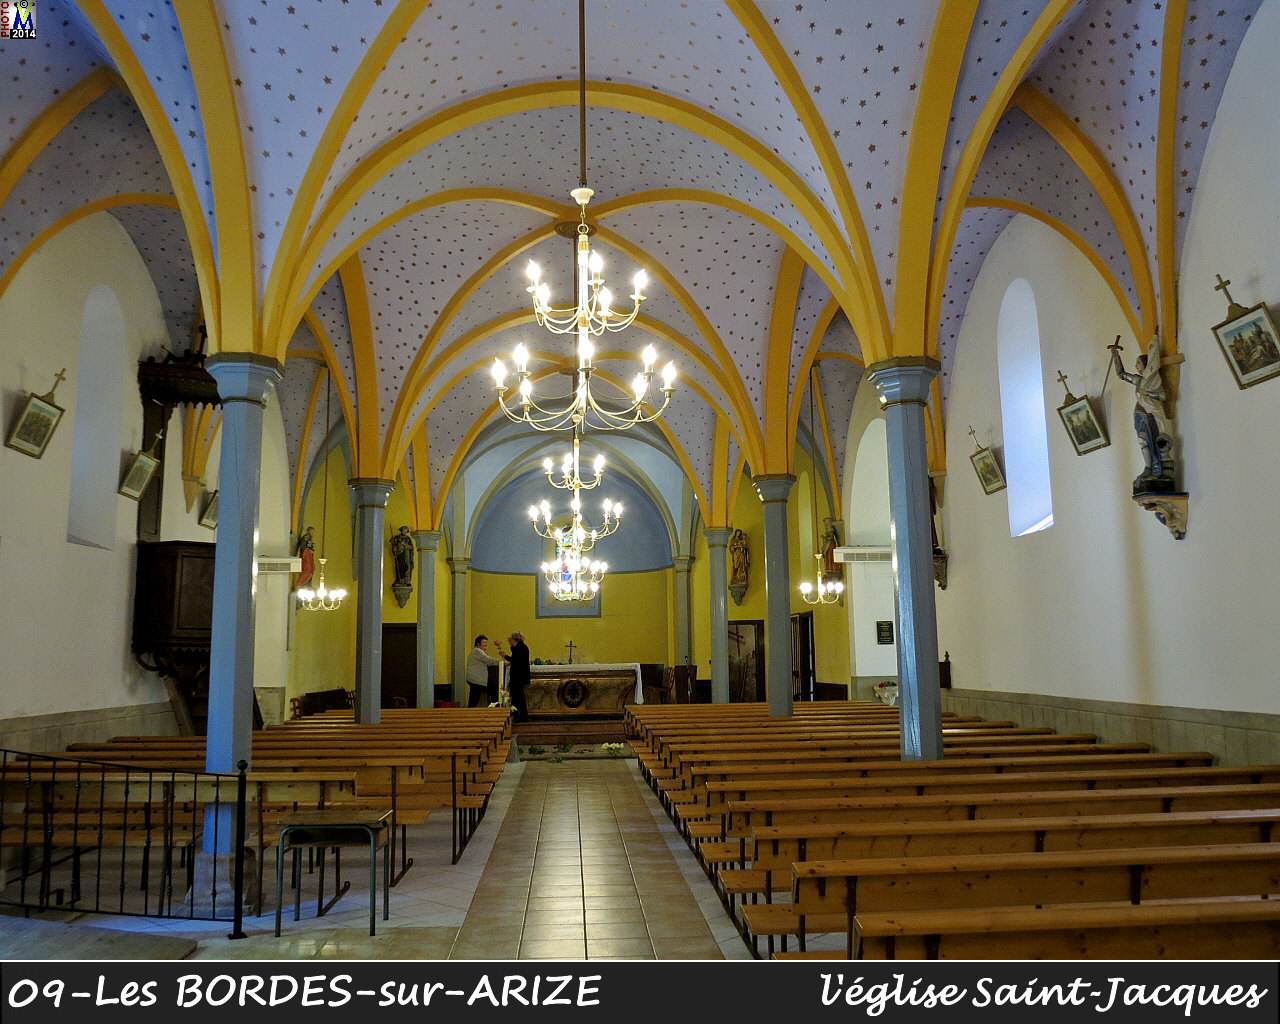 09BORDES-ARIZE_eglise_200.jpg